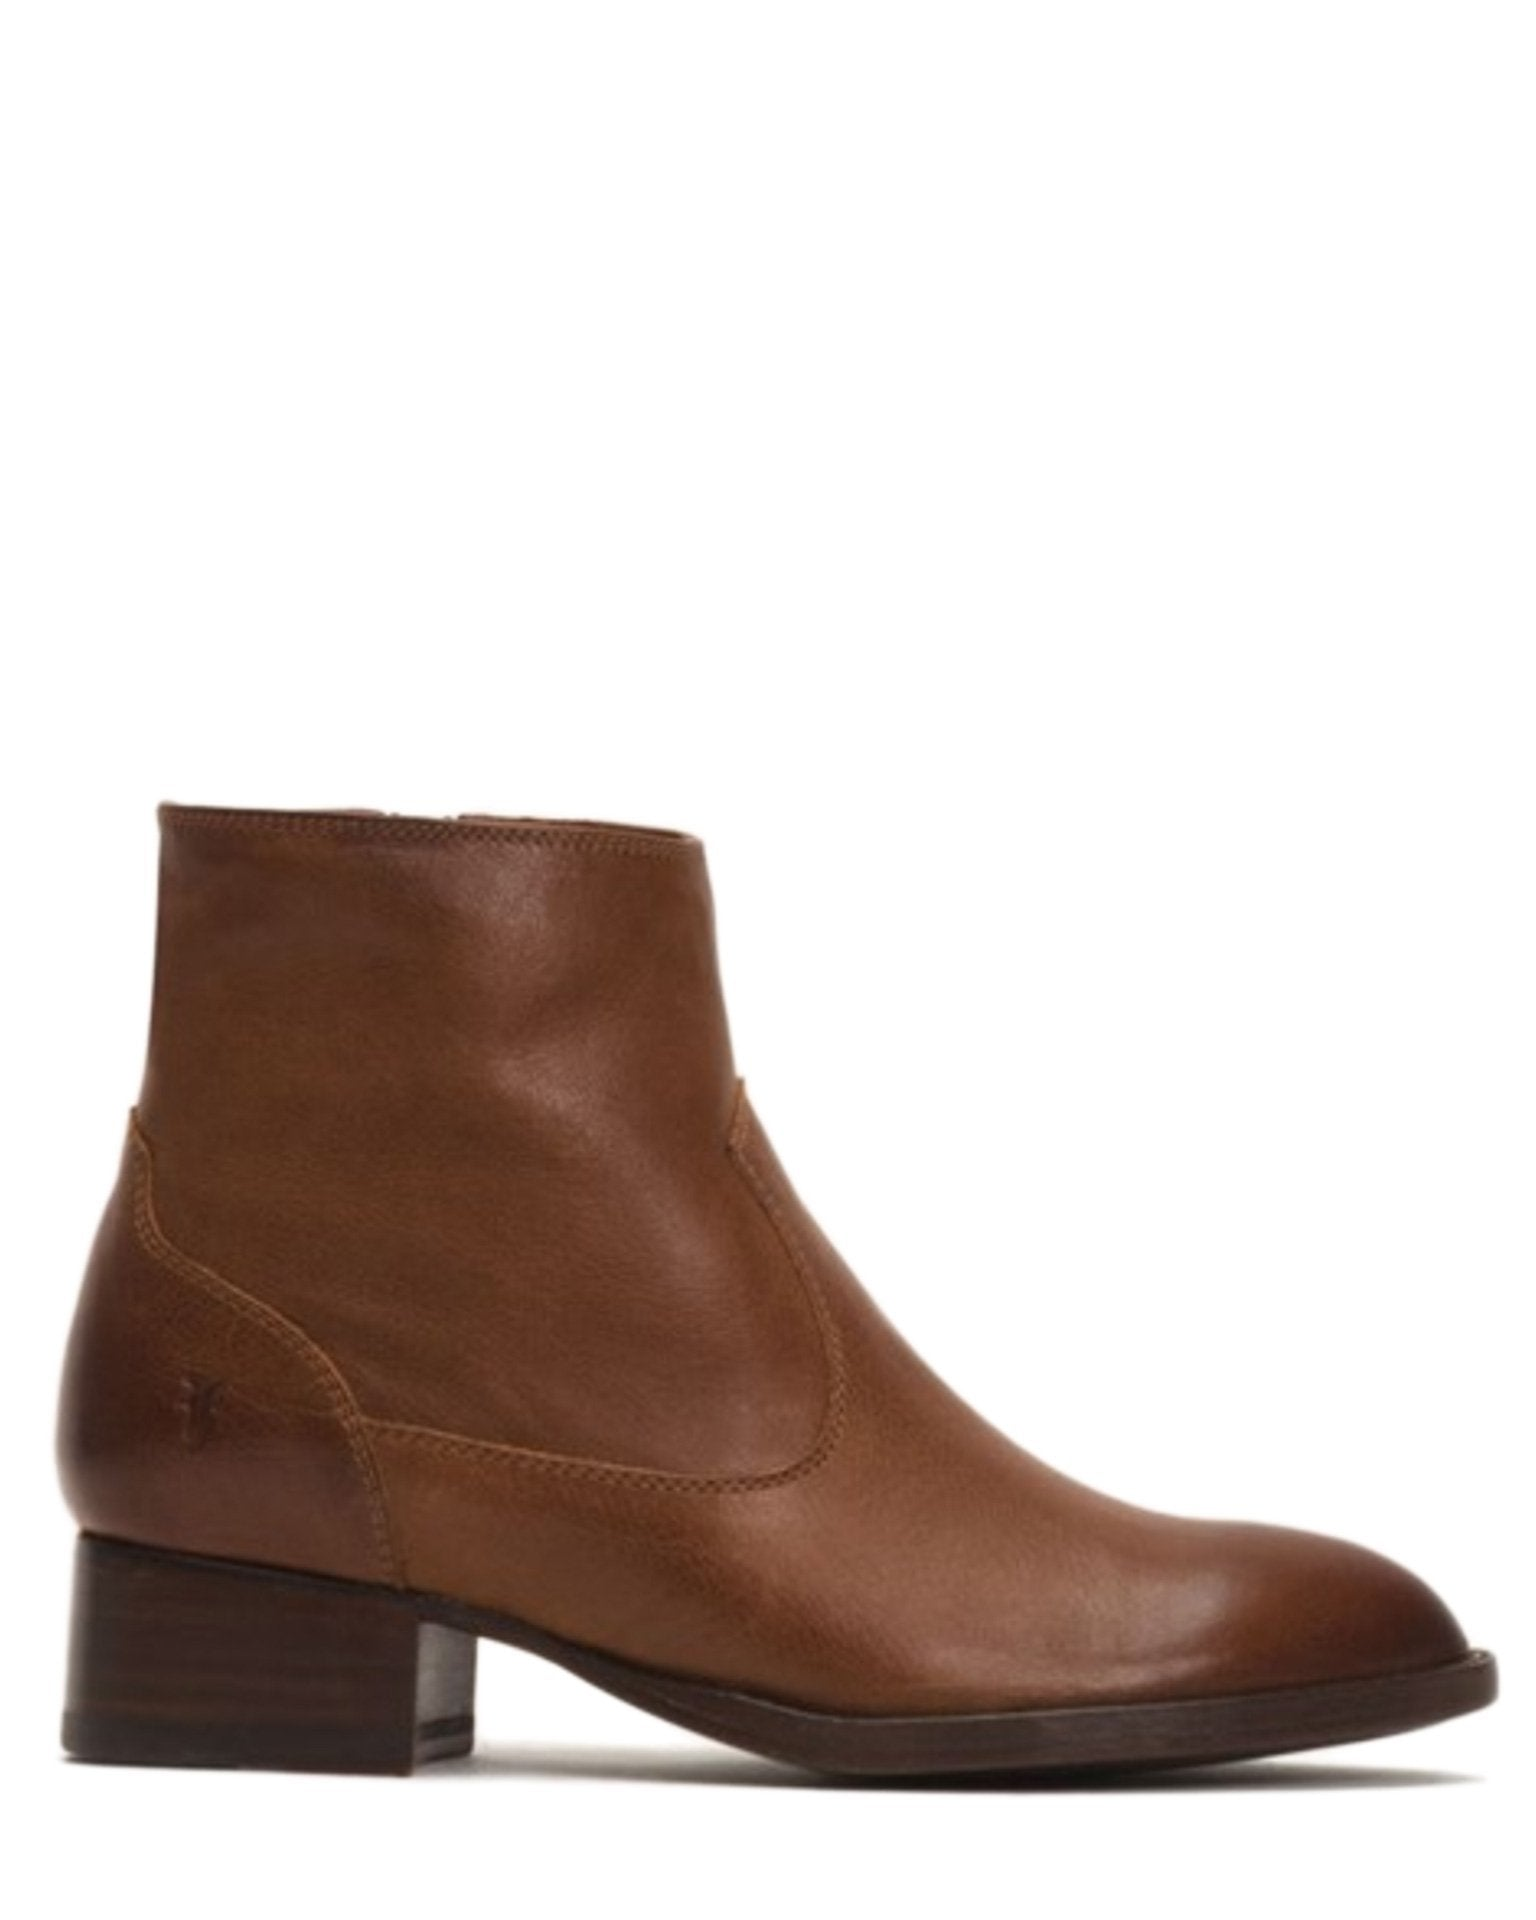 Frye Shoes Cognac / 6 Brooke Short Inside Zip